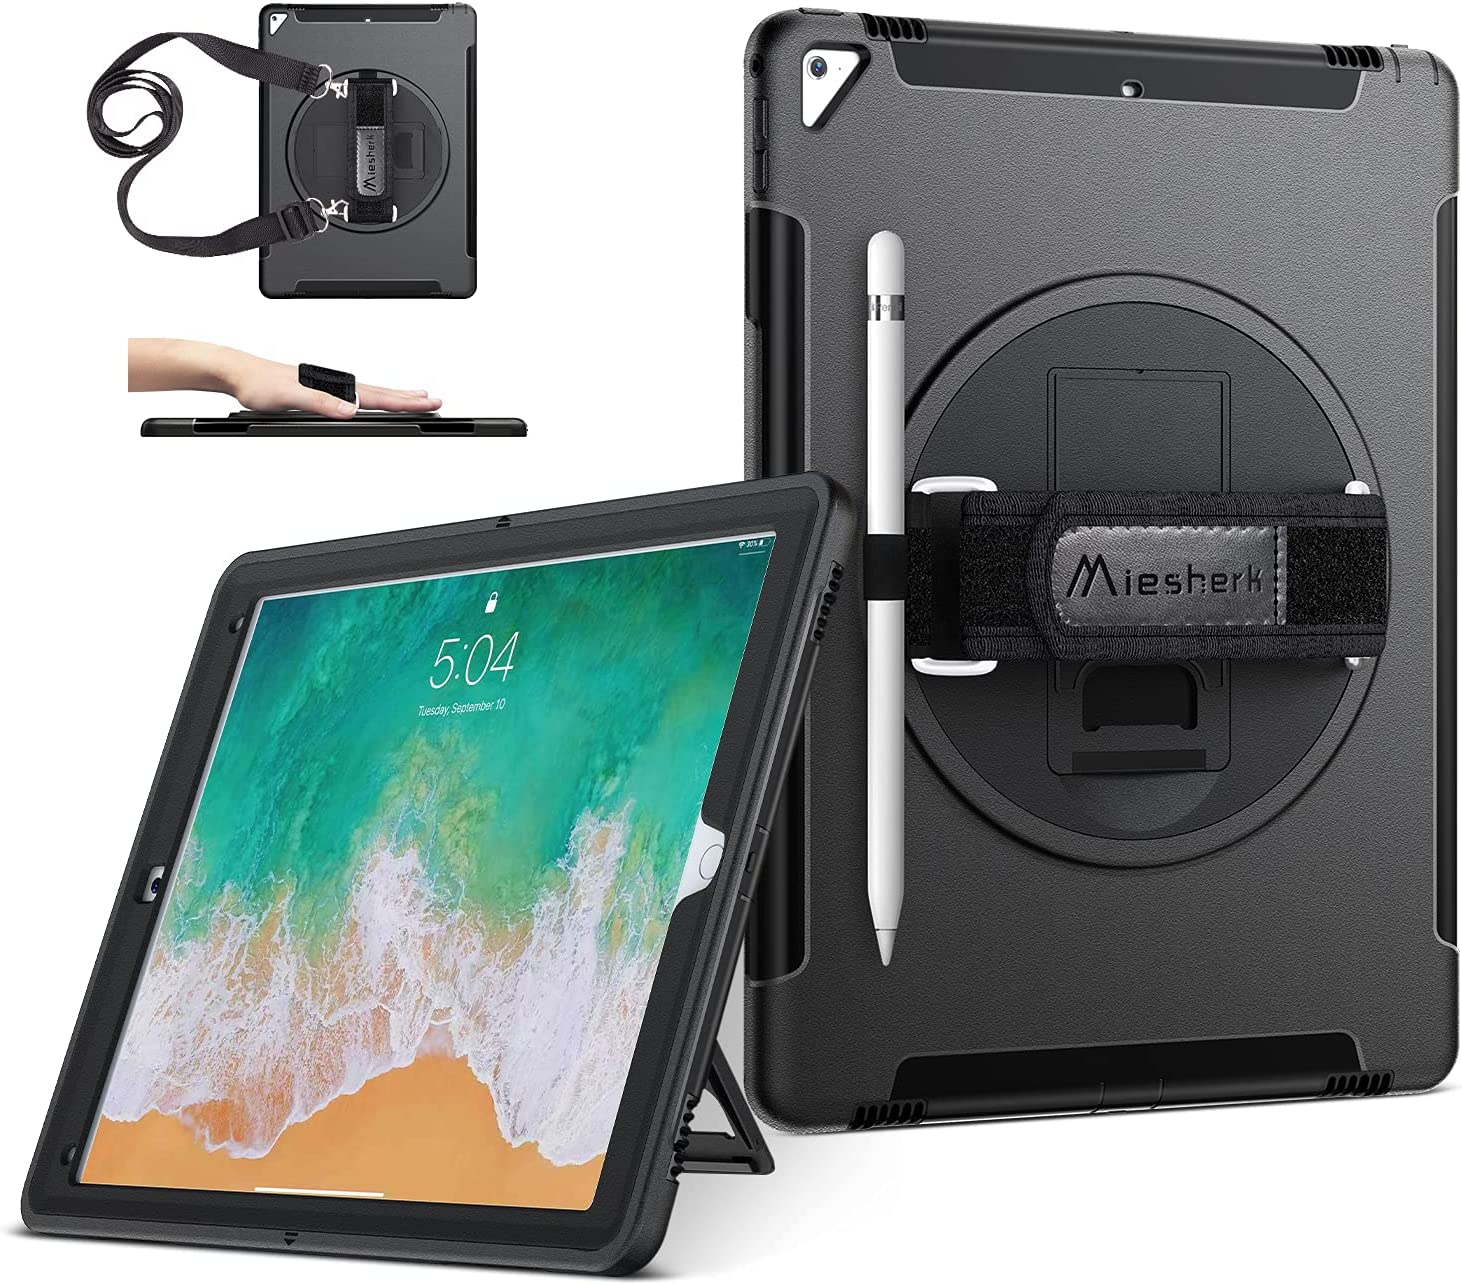 iPad Pro 12.9 Case 2nd Generation 2017 & 2015 1st Generation, Military Grade Heavy Duty Rugged Shockproof Protective Cover w/ 360° Rotatable Stand + Handle Hand & Shoulder Strap + Pencil Holder Black